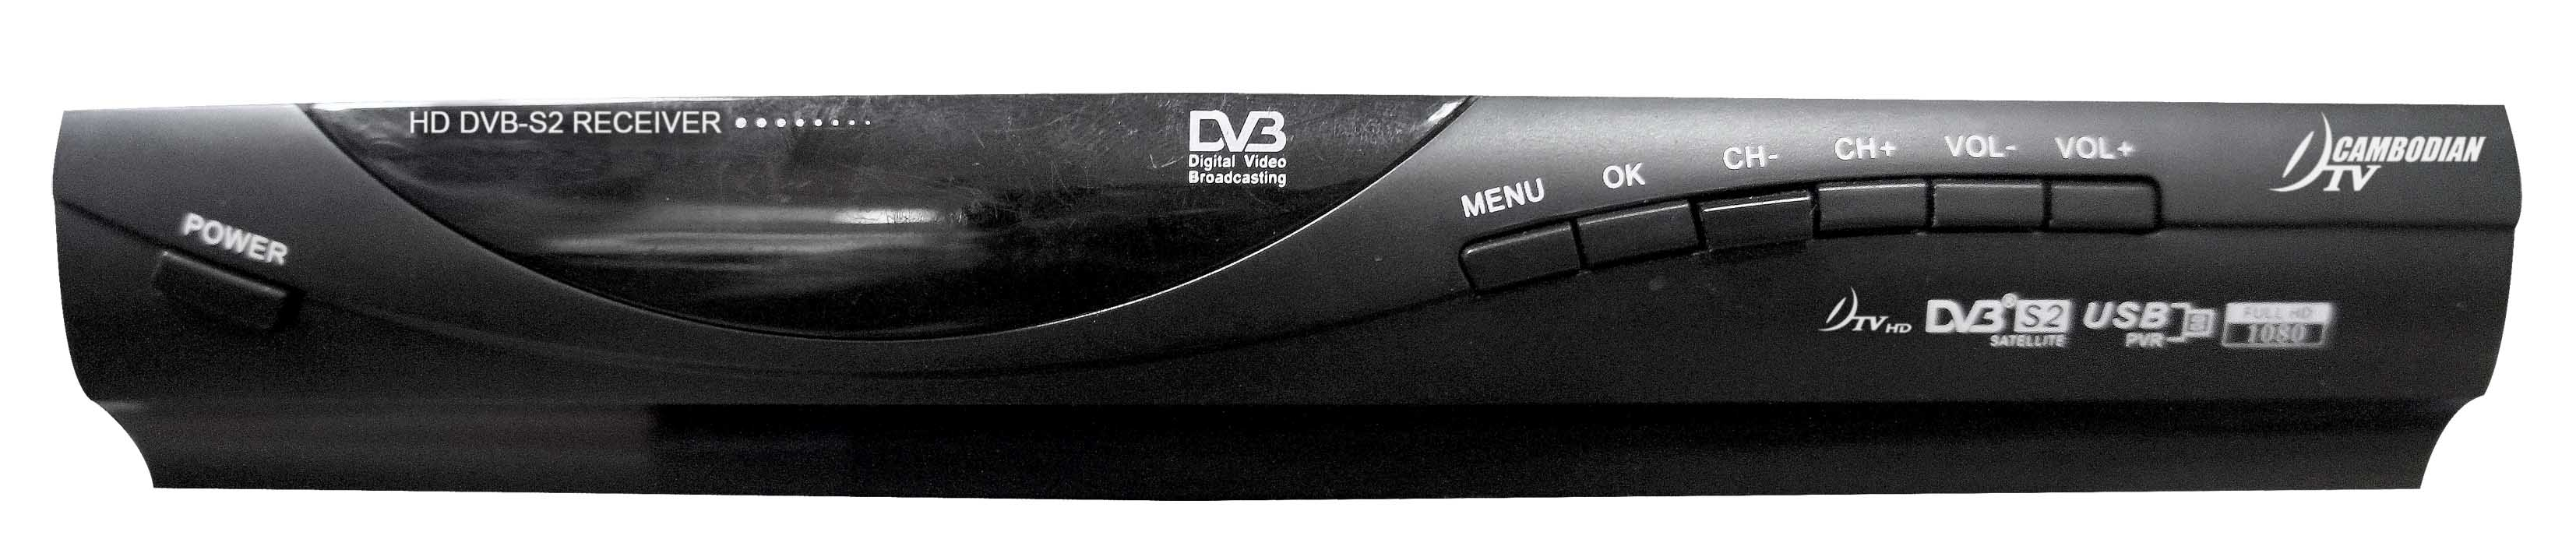 New DTV HD Box